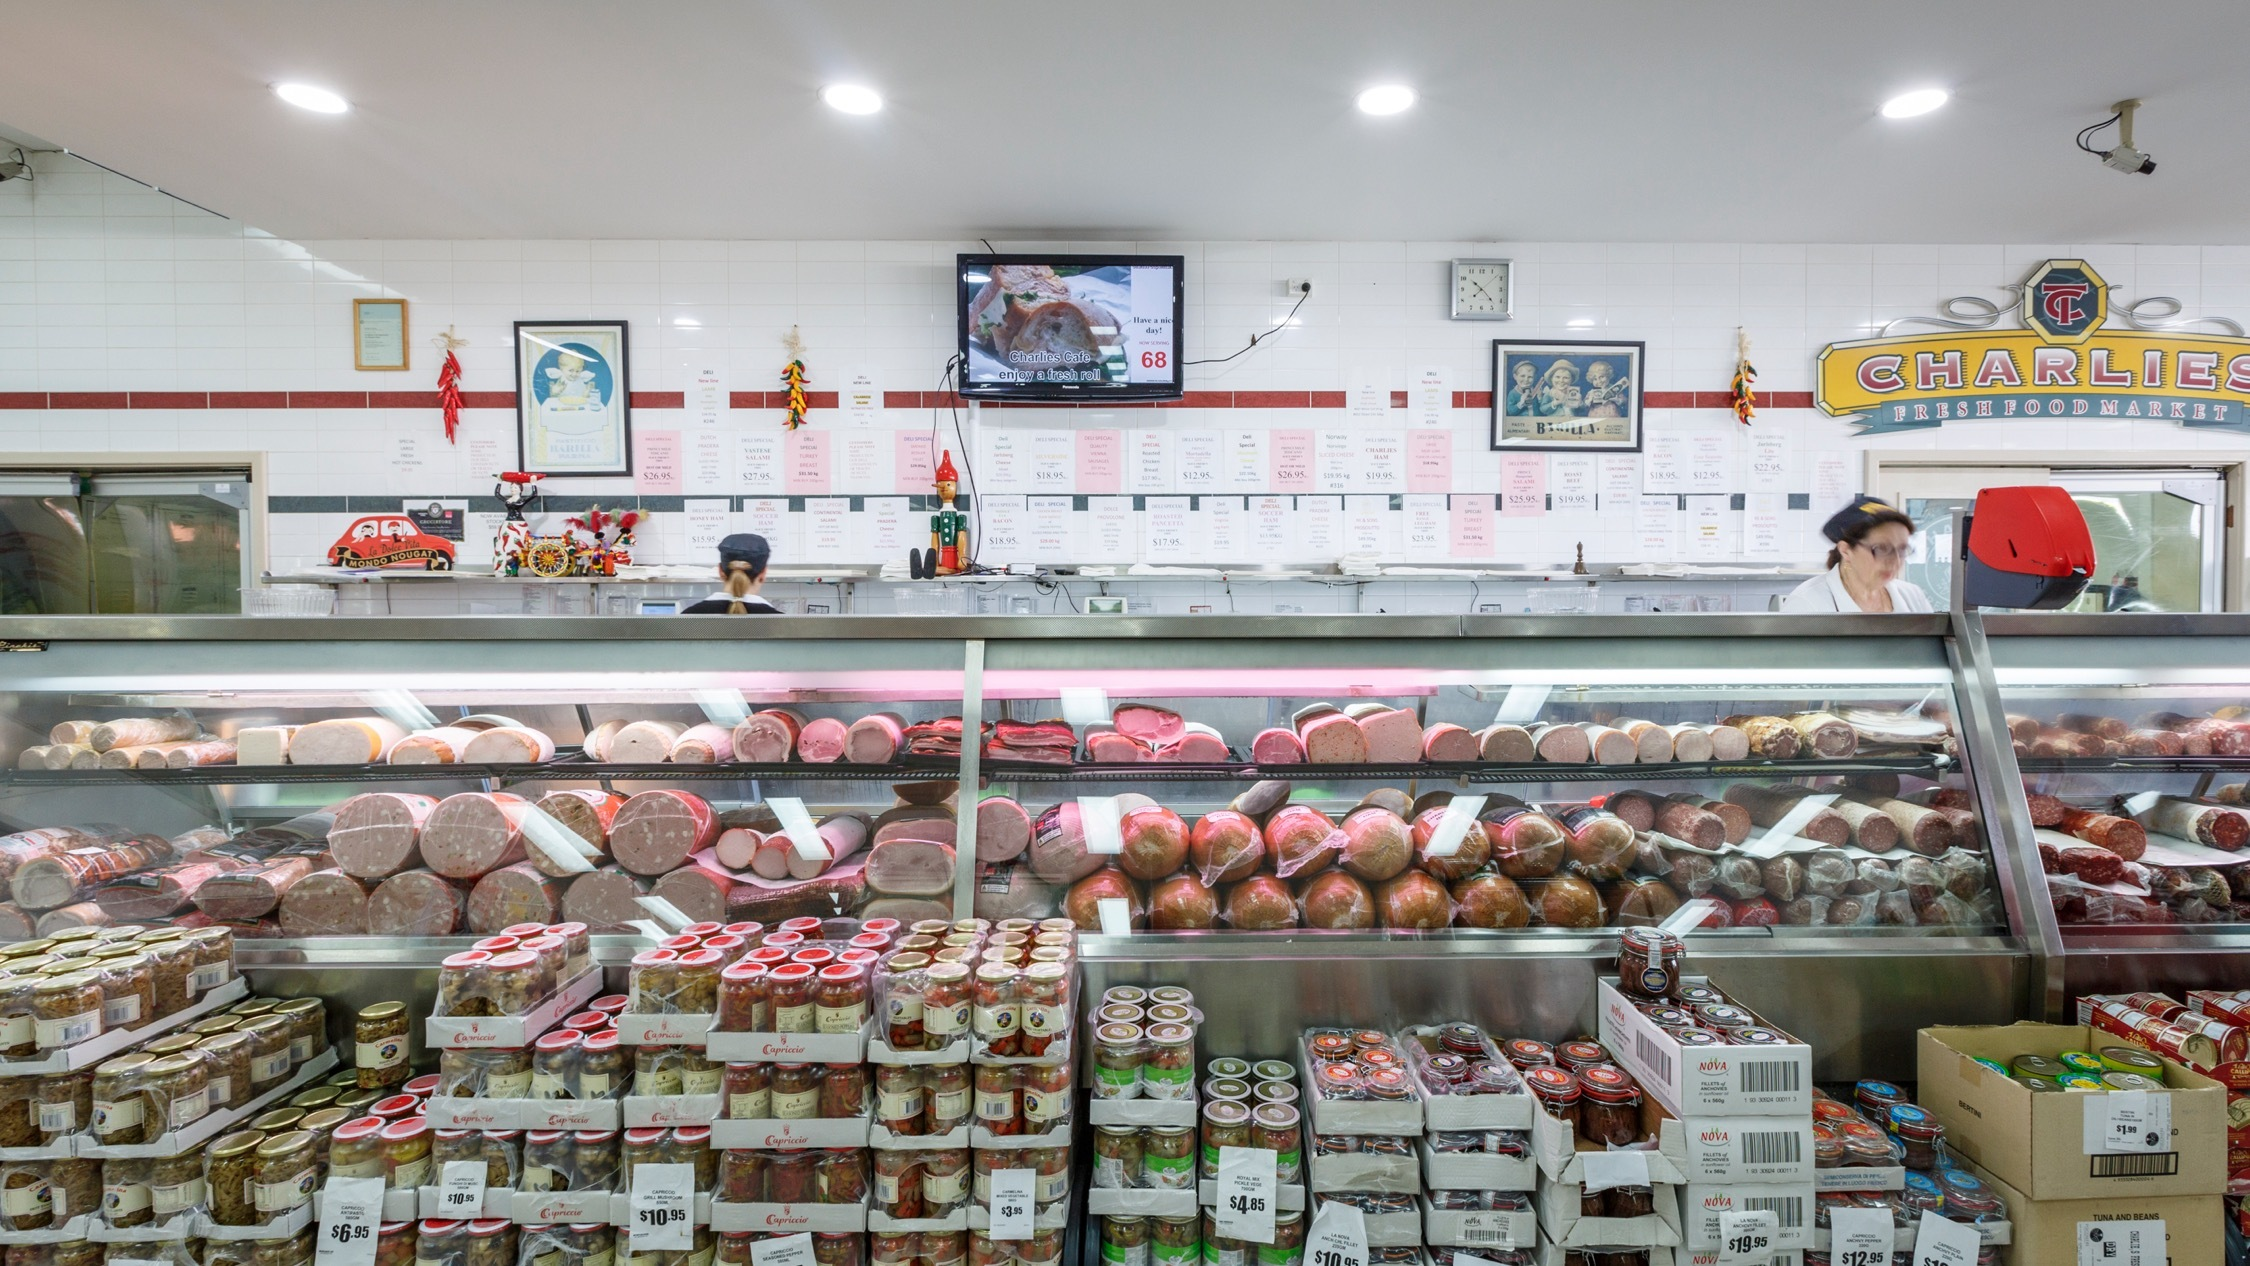 Perth's favourite local delis